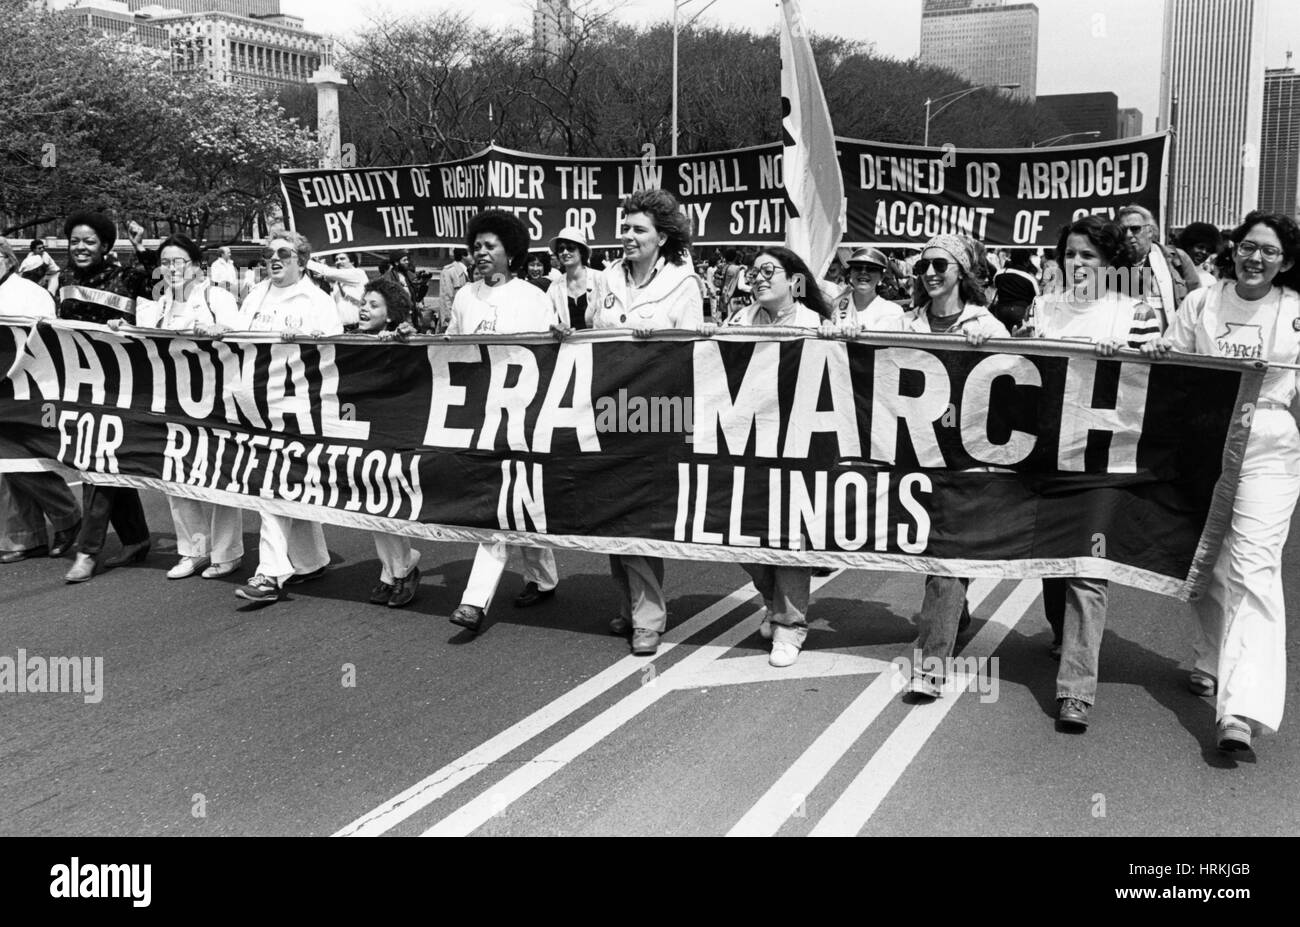 equal rights amendment march stock photo 135041323 alamy